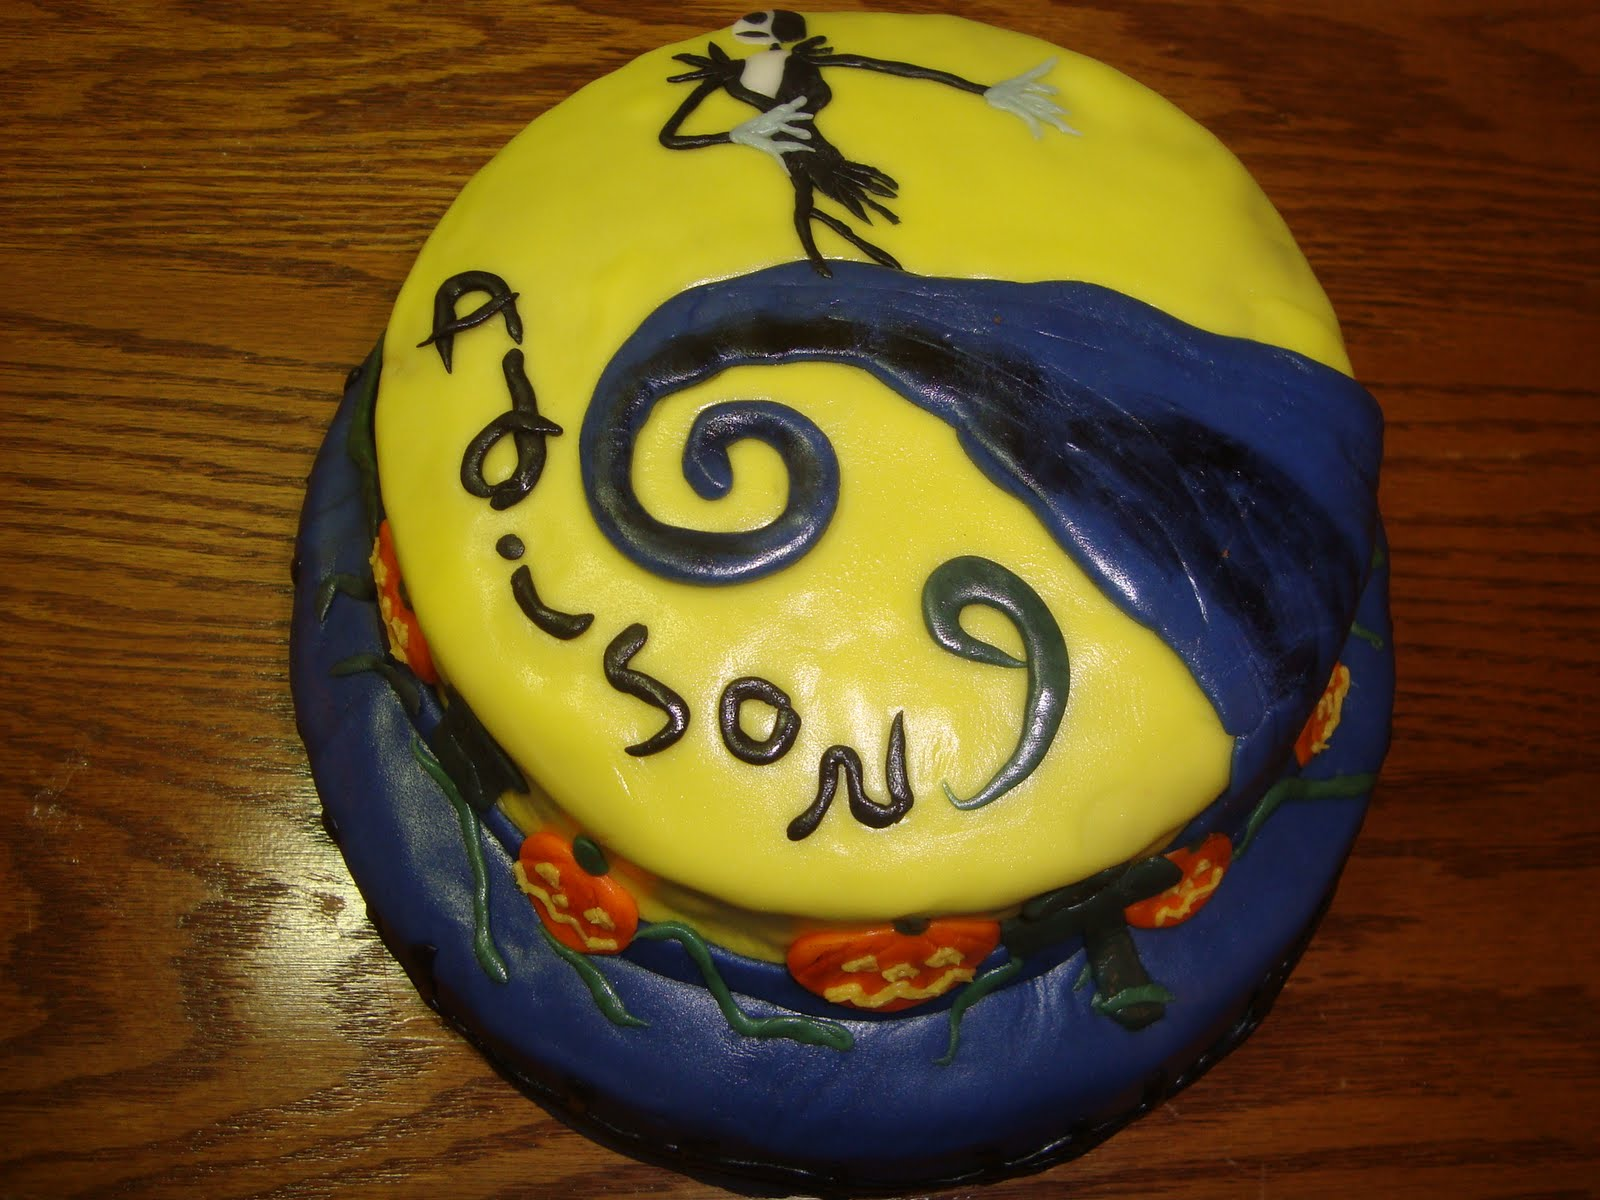 The Fairy Cake Mother Nightmare Before Christmas Cake